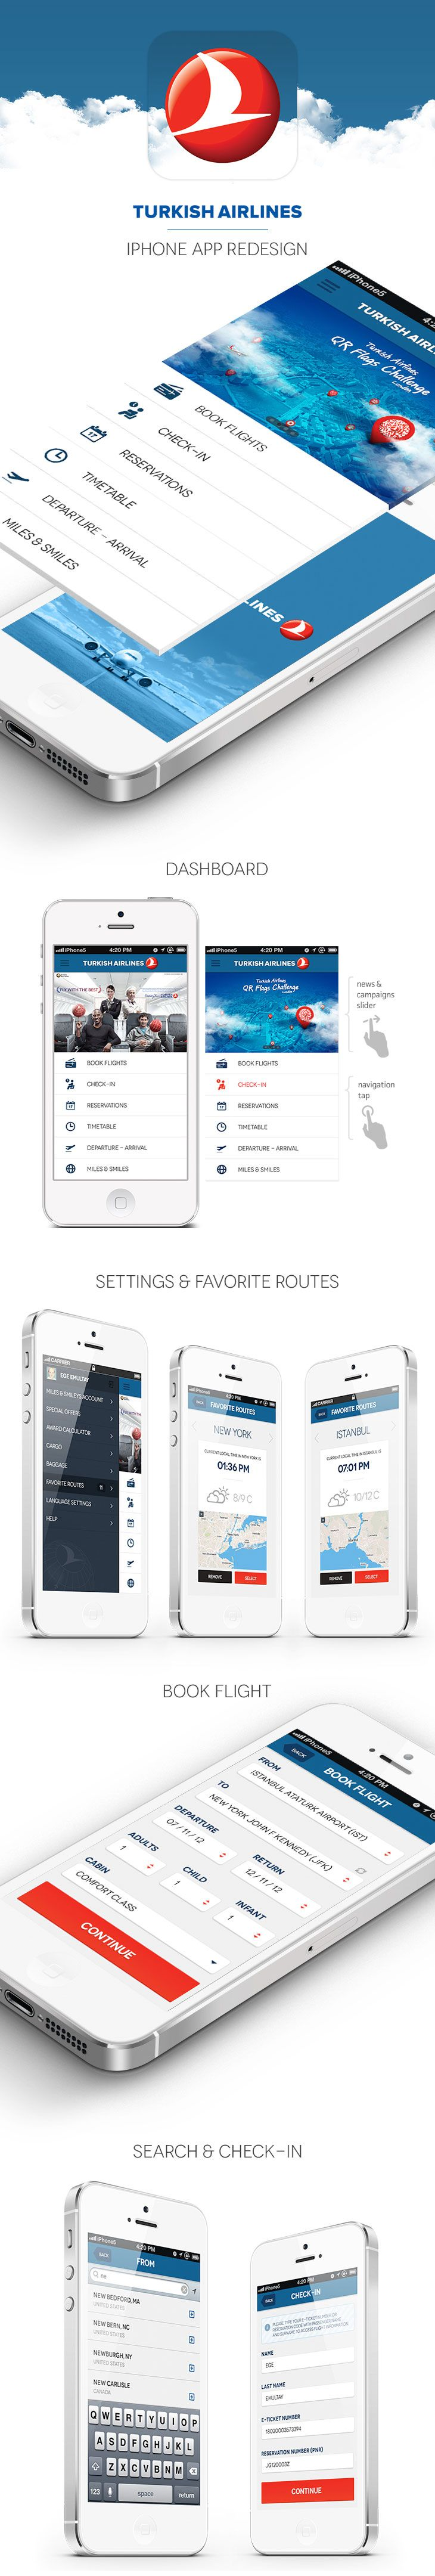 Turkish Airlines iPhone App Redesign